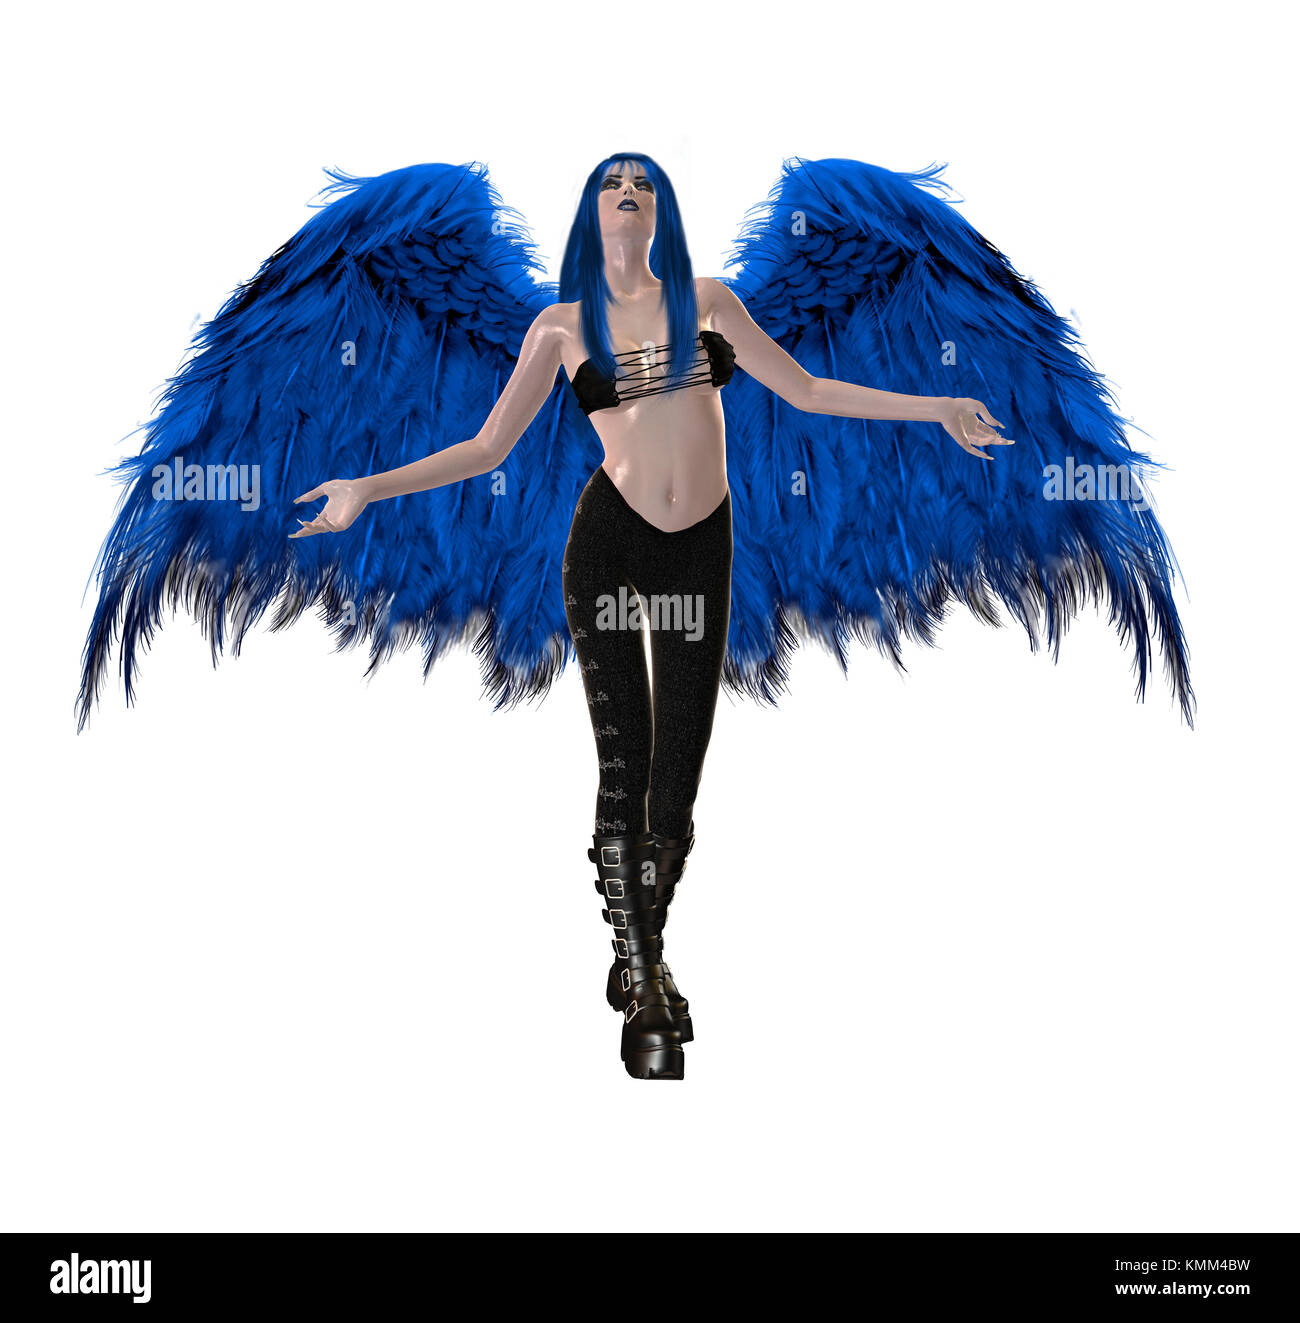 Gothic blue angel with wings spread and arms open - Stock Image